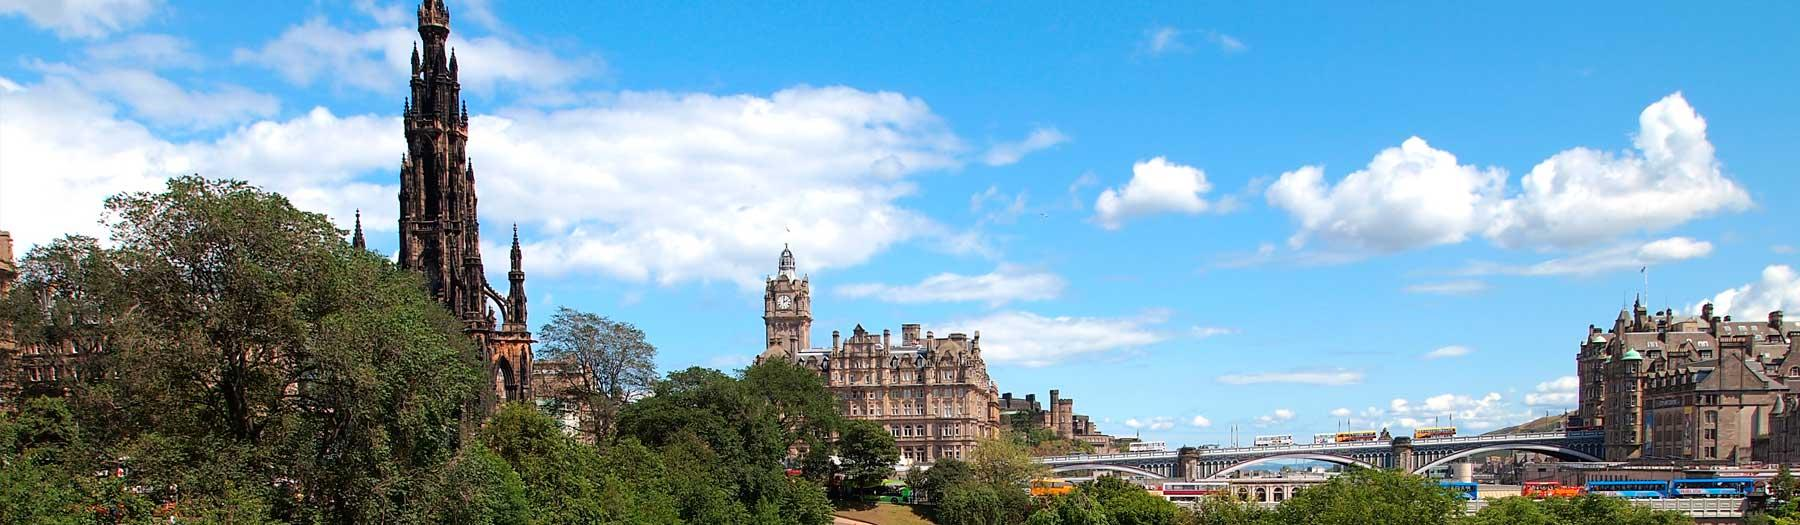 Image: Princes Street Gardens. Credit: Image republished with kind permission of VisitScotland.